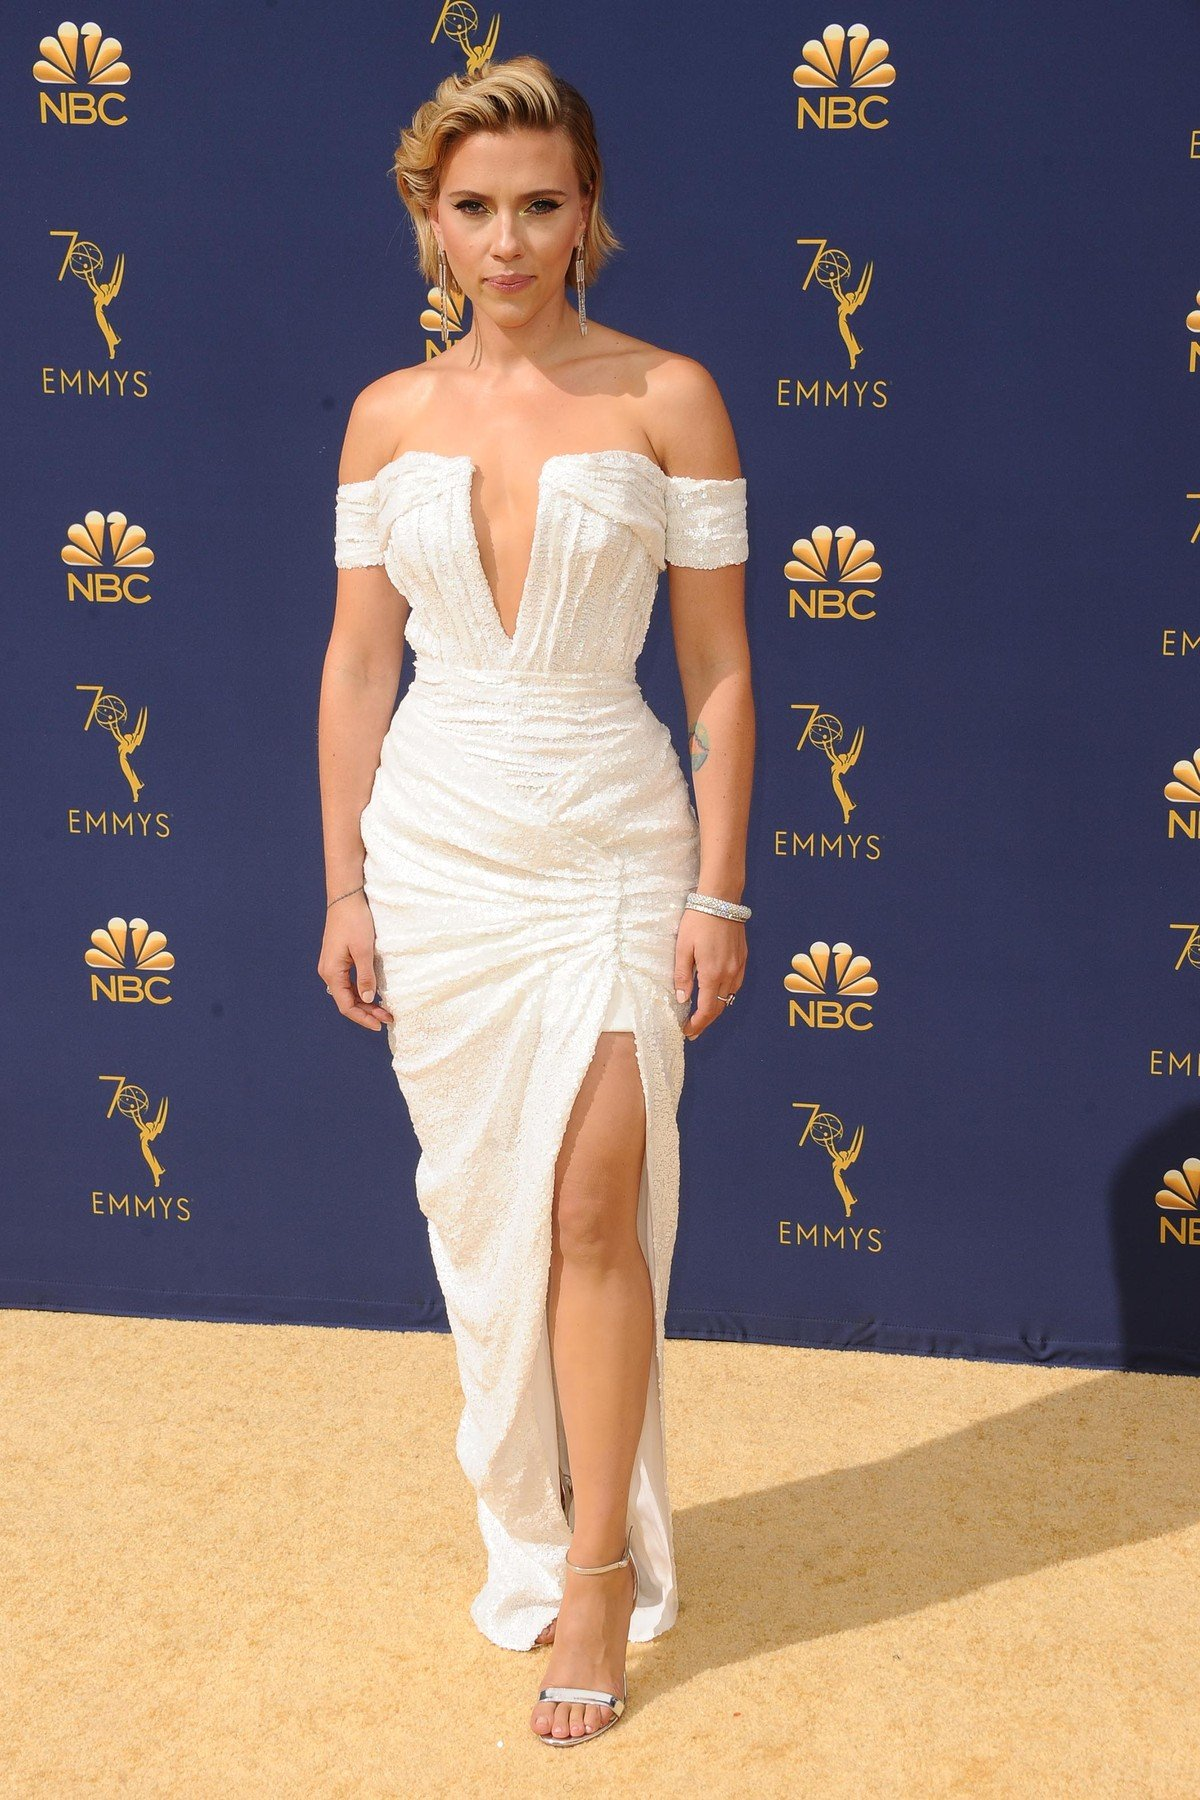 , Los Angeles, CA -20180917 - The 70th Primetime Emmy Awards Red Carpet, at Microsoft Theater  -PICTURED: Scarlett Johansson -, Image: 387146111, License: Rights-managed, Restrictions: , Model Release: no, Credit line: Profimedia, INSTAR Images